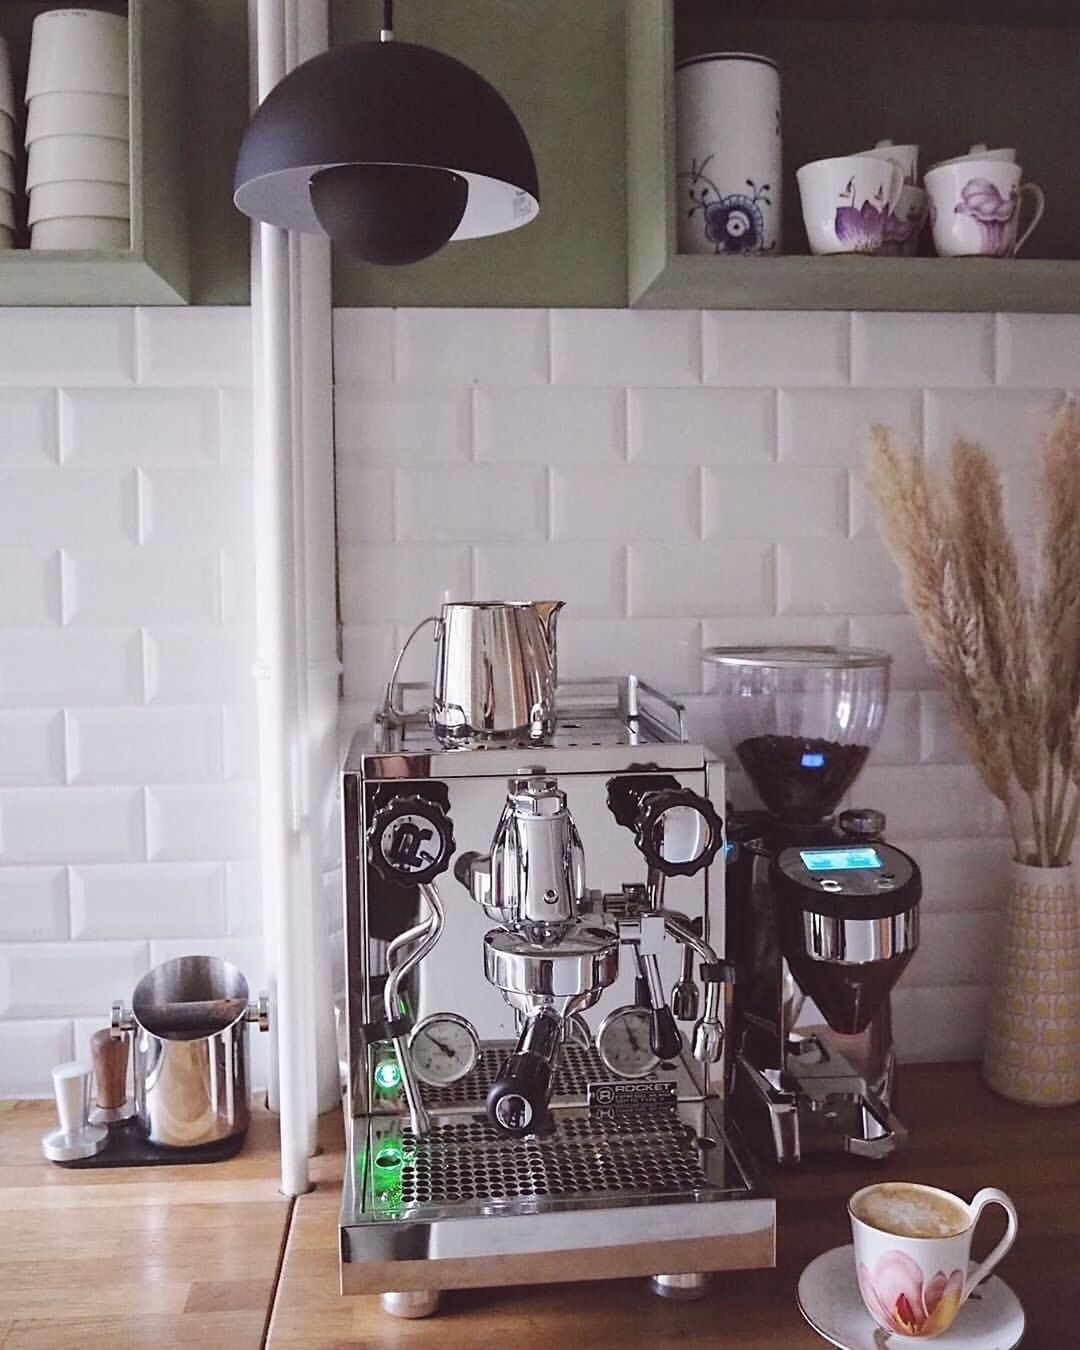 Rocket Espresso at home with @inbloom.dk #rocketgiotto #macinatorefausto #rocket...-#kitchendesign #macinatorefausto #rocketathome #rocketgiotto #espressoathome Rocket Espresso at home with @inbloom.dk #rocketgiotto #macinatorefausto #rocket...-#kitchendesign #macinatorefausto #rocketathome #rocketgiotto #espressoathome